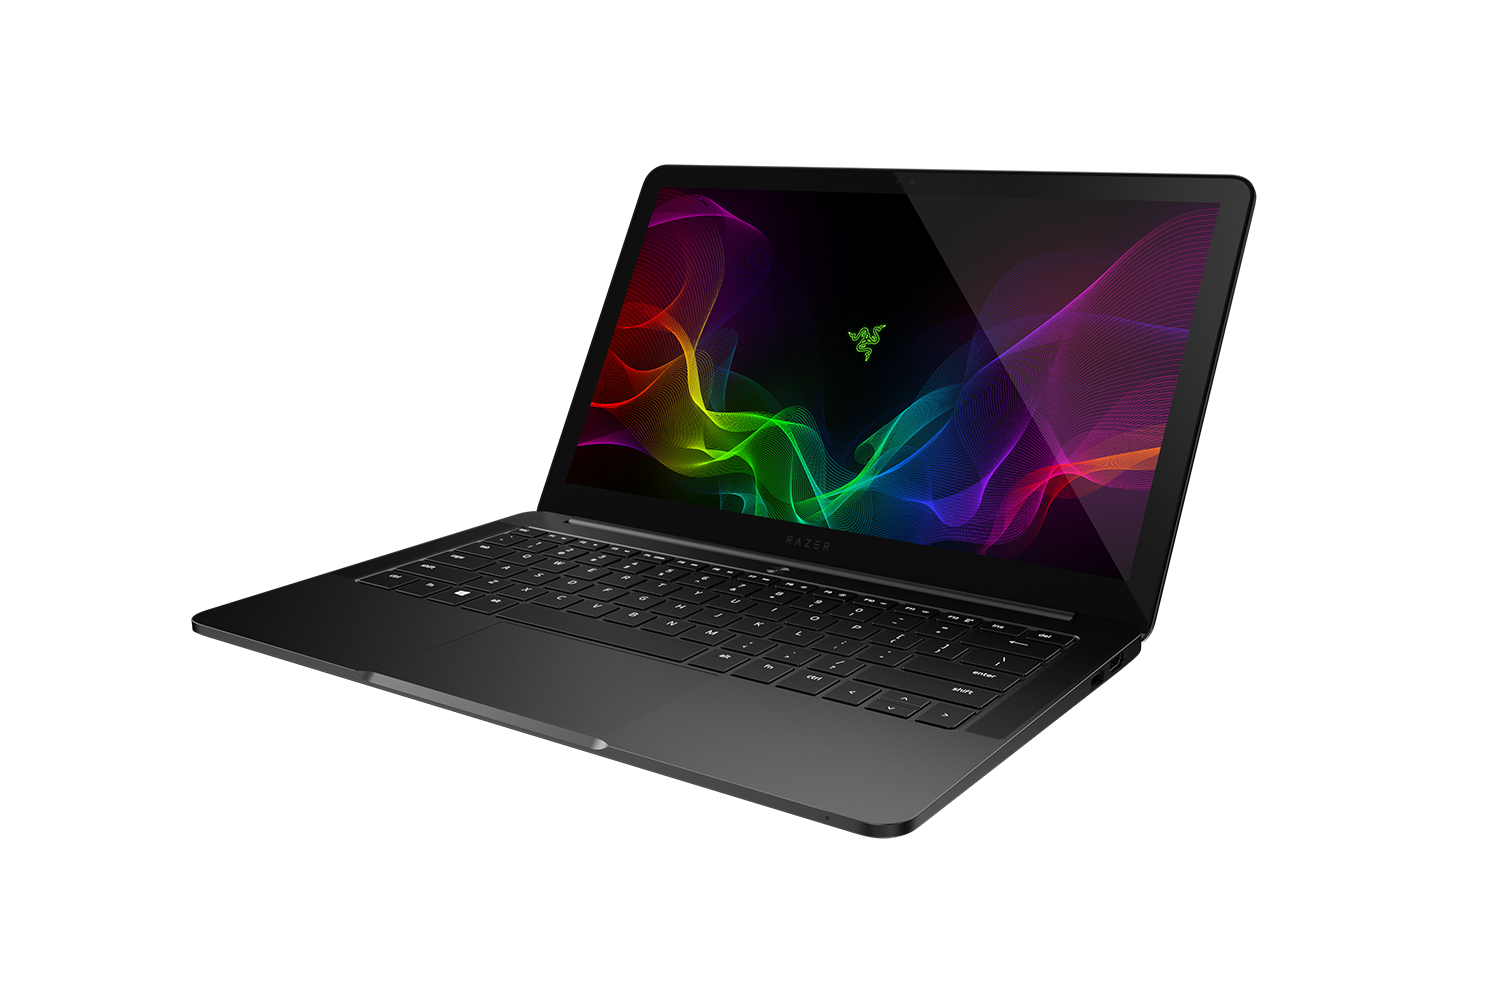 "$300 off Razer Blade Stealth Ultrabook - 4K 12.5"" Touchscreen, i7 7th Gen, 16GB RAM, 512GB SSD - $1,299.99 w/ Free Shipping and Full License for FL Studio 12 Producer Edition"